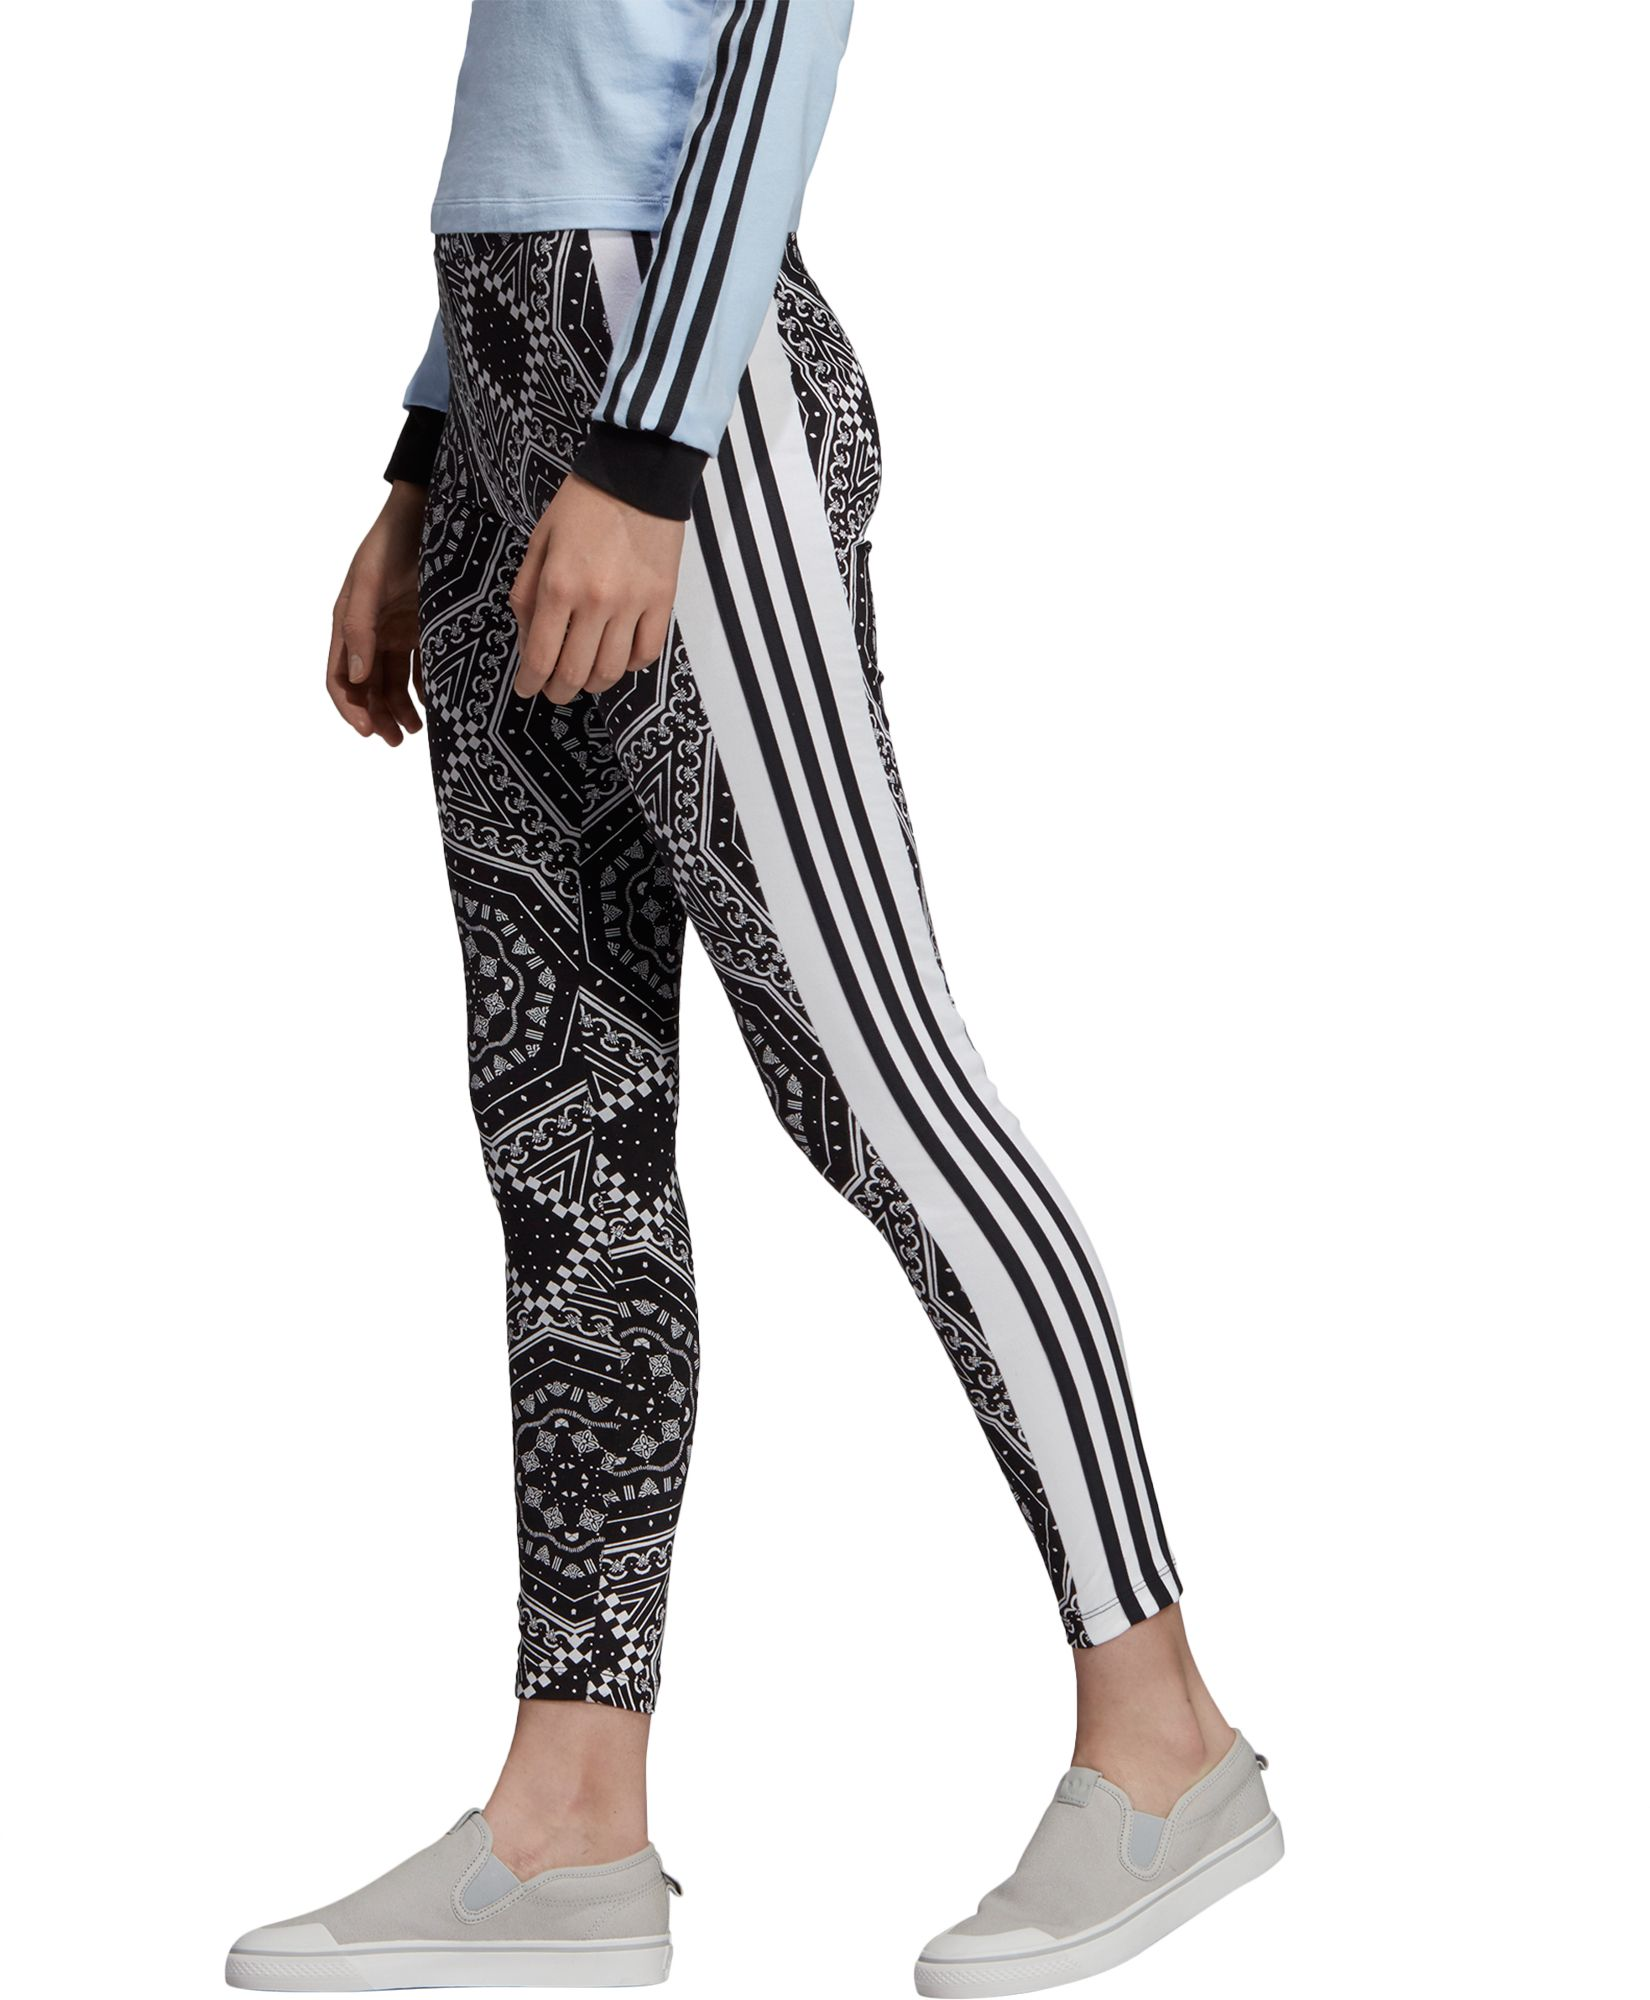 1dcff412e41 adidas Originals Women's Printed Tights | DICK'S Sporting ...